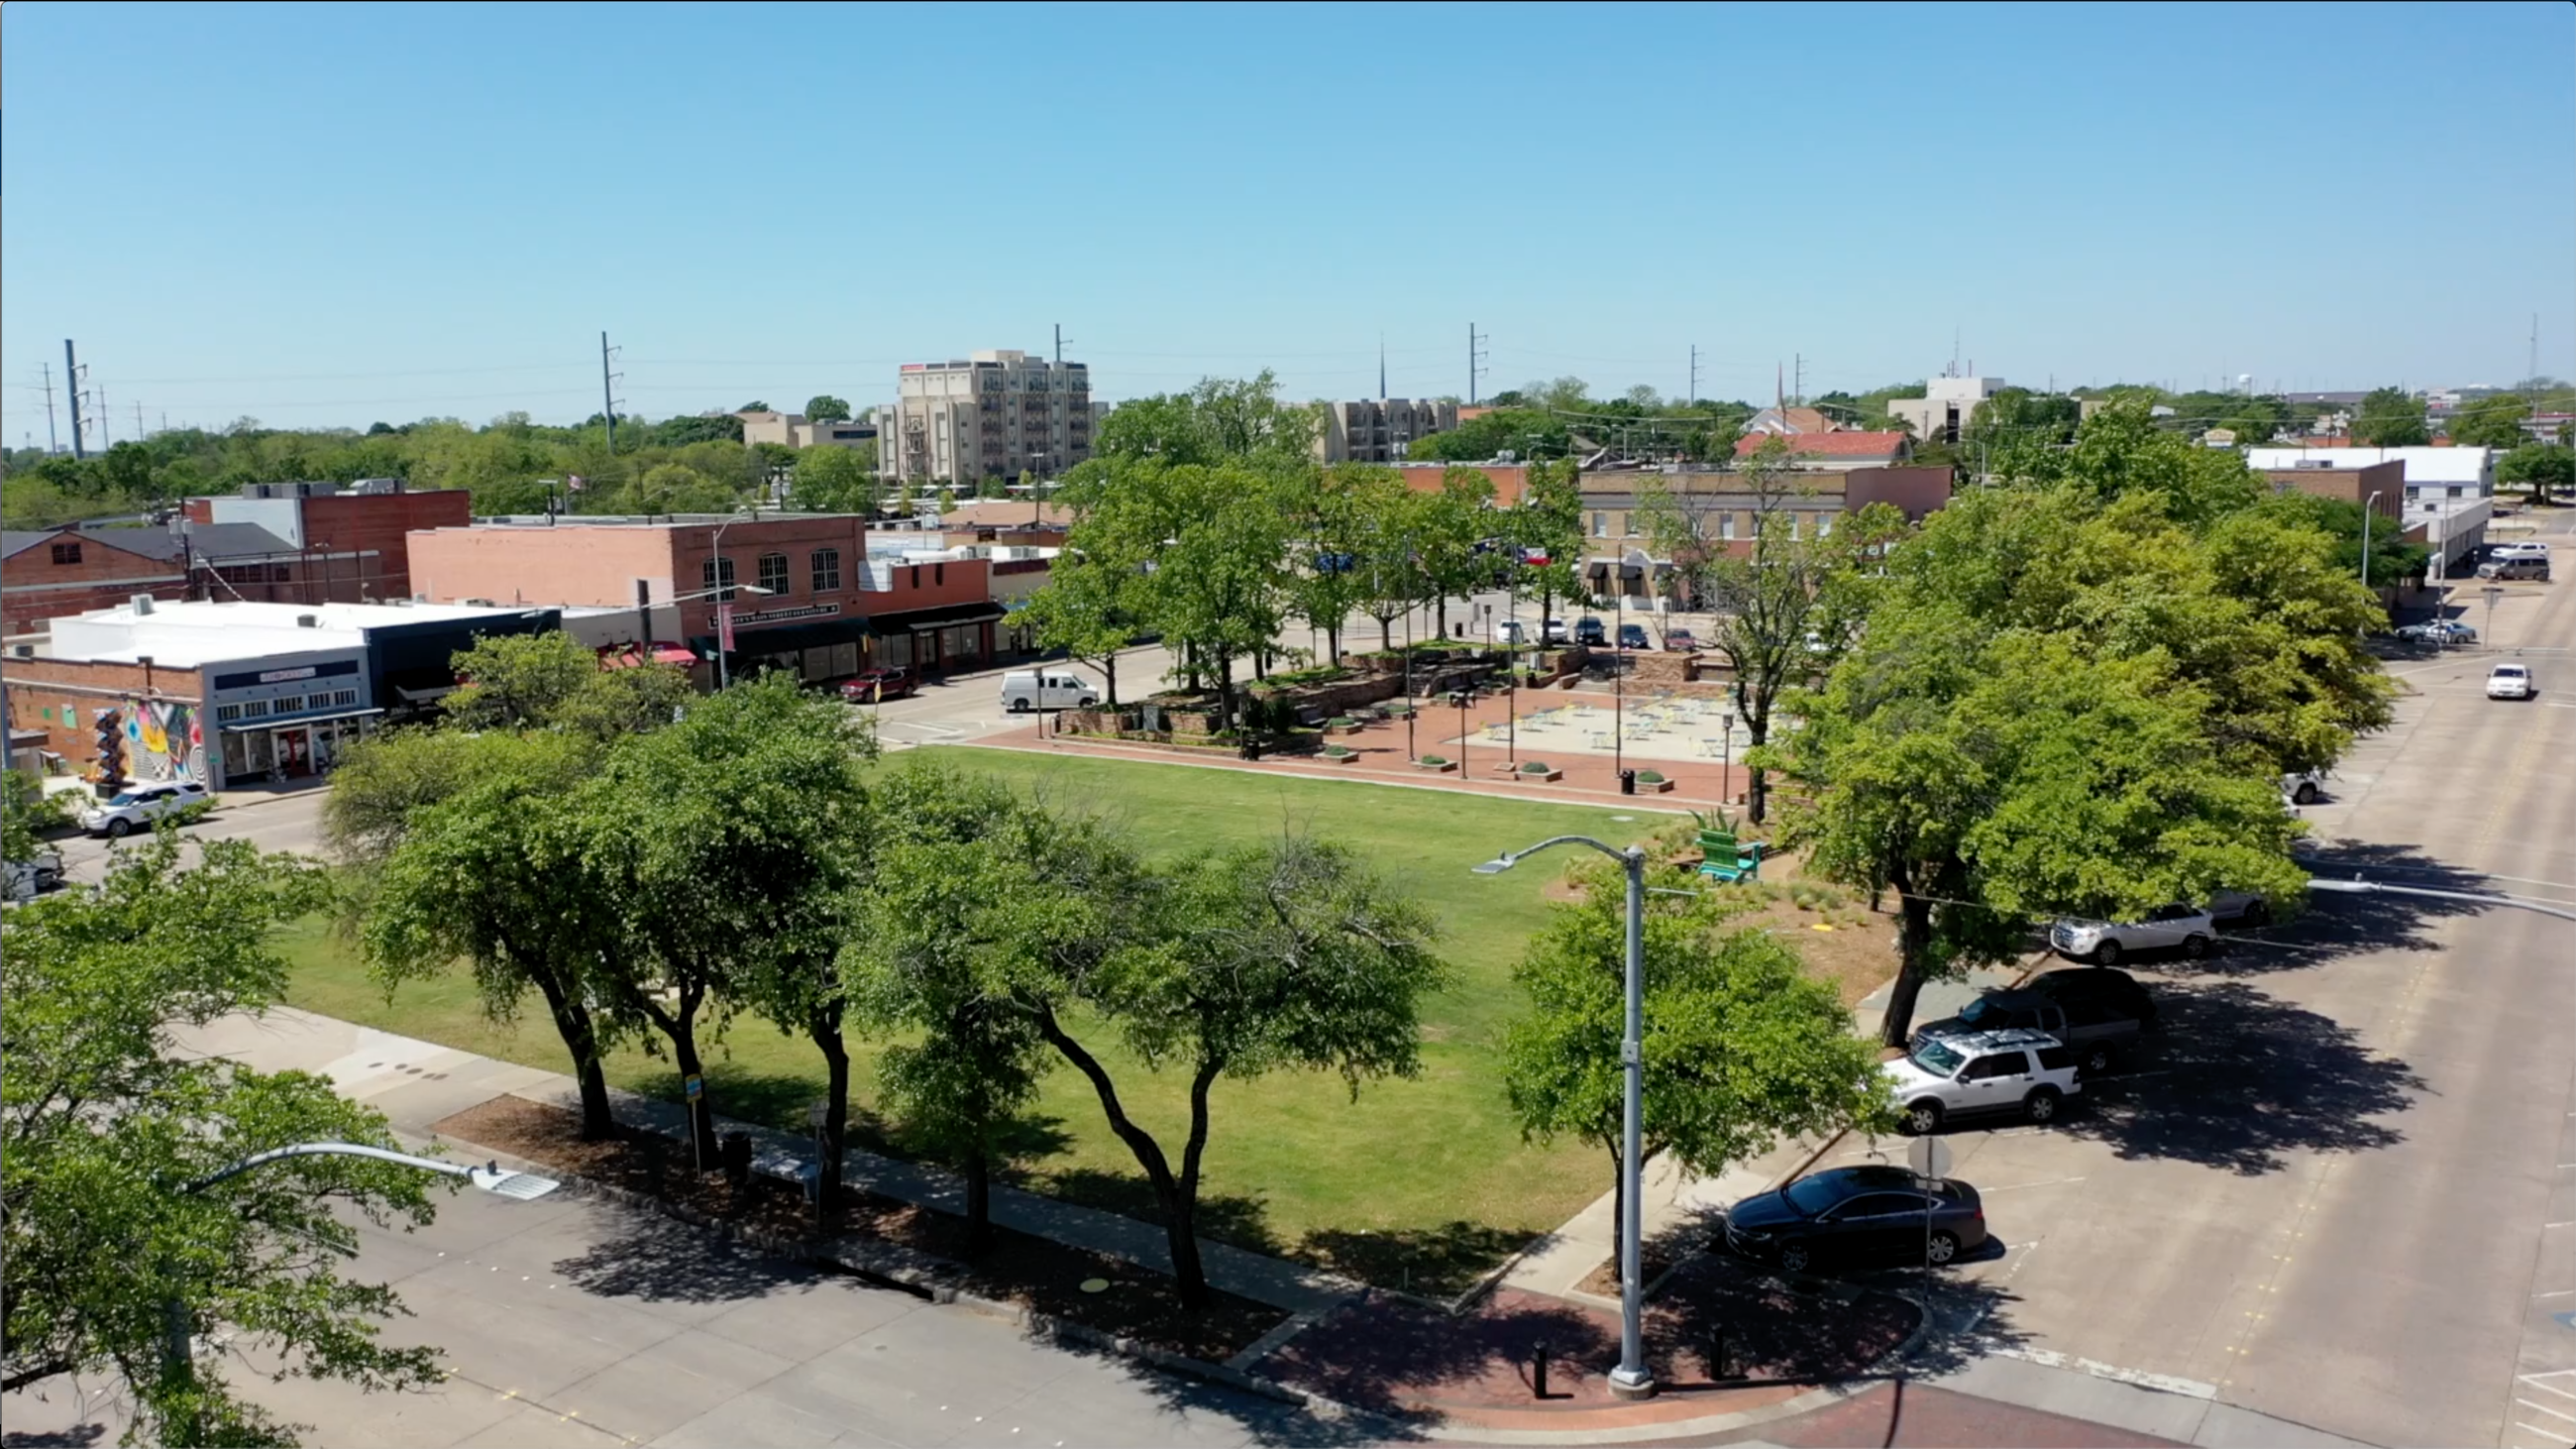 Aerial view of Downtown Garland